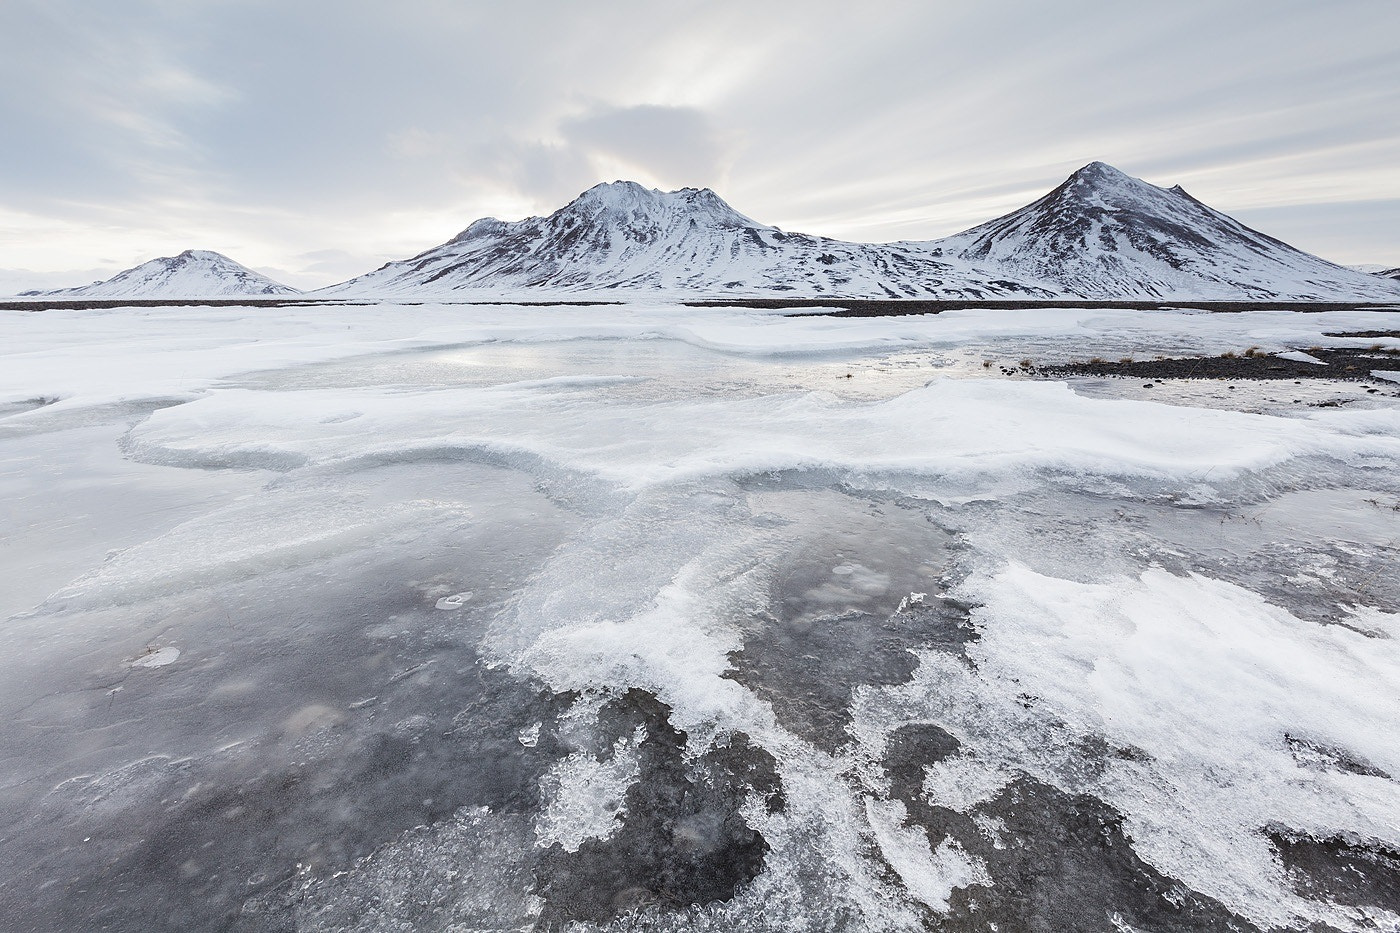 Photograph Icy mountains by Bart Heirweg on 500px